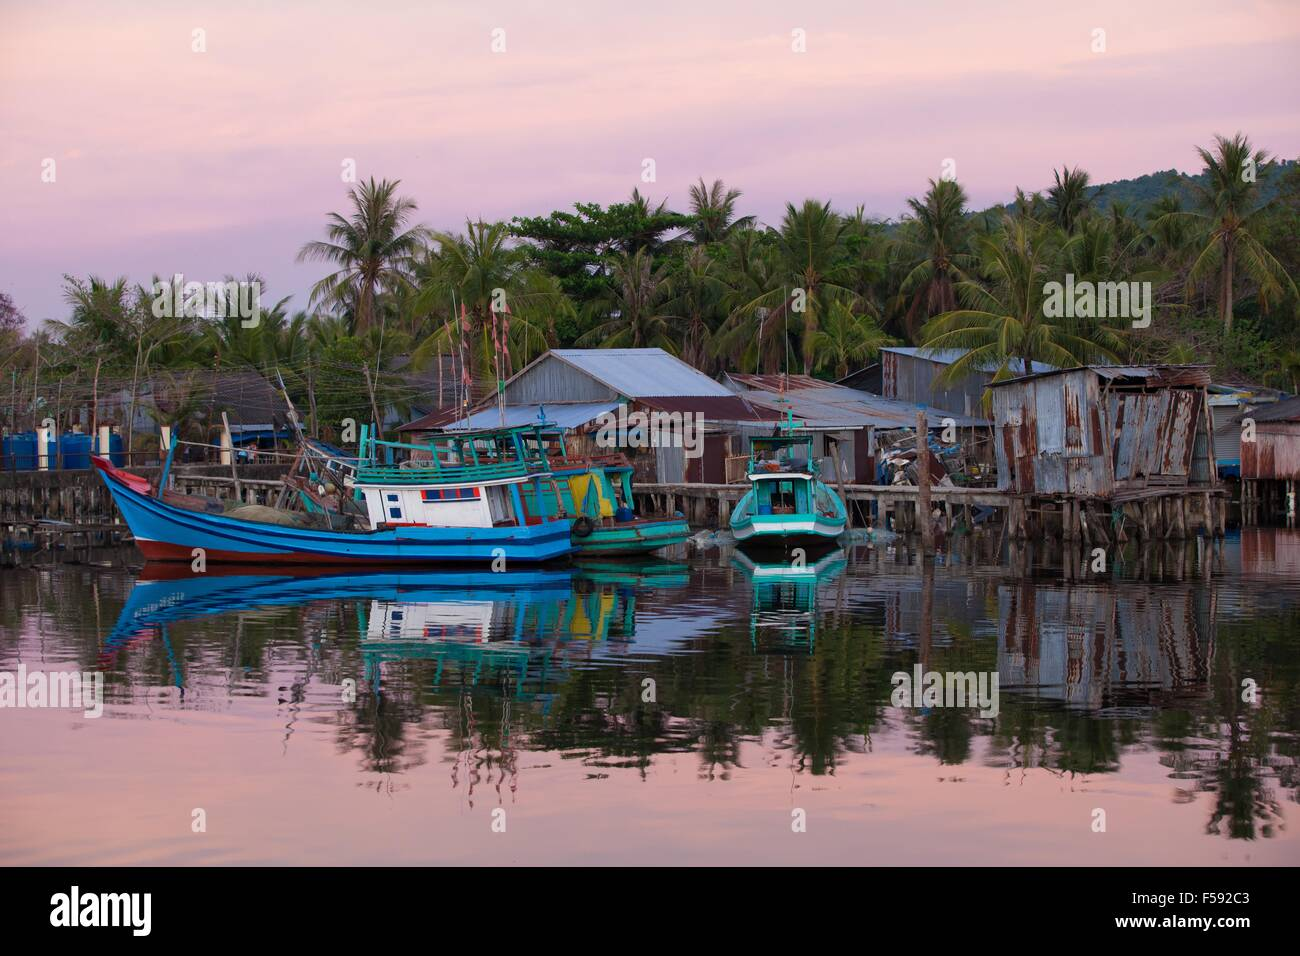 Fishing boats near houses of fishermen in rural area of Phu Quoc Island, Southern Vietnam. - Stock Image